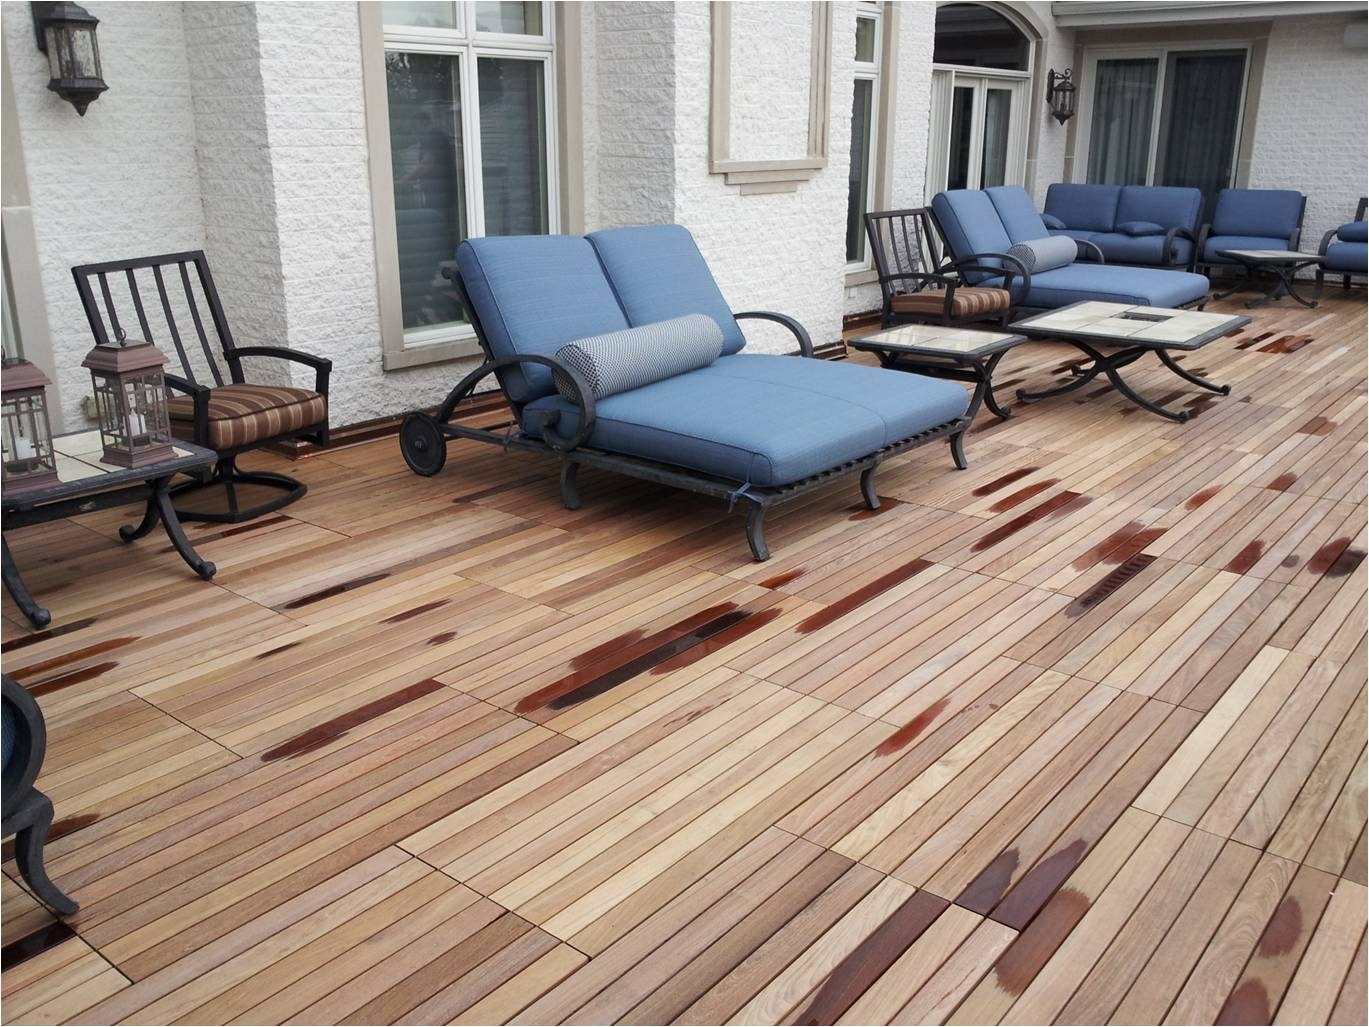 Installing Ikea Deck Tiles — Rickyhil Outdoor Ideas